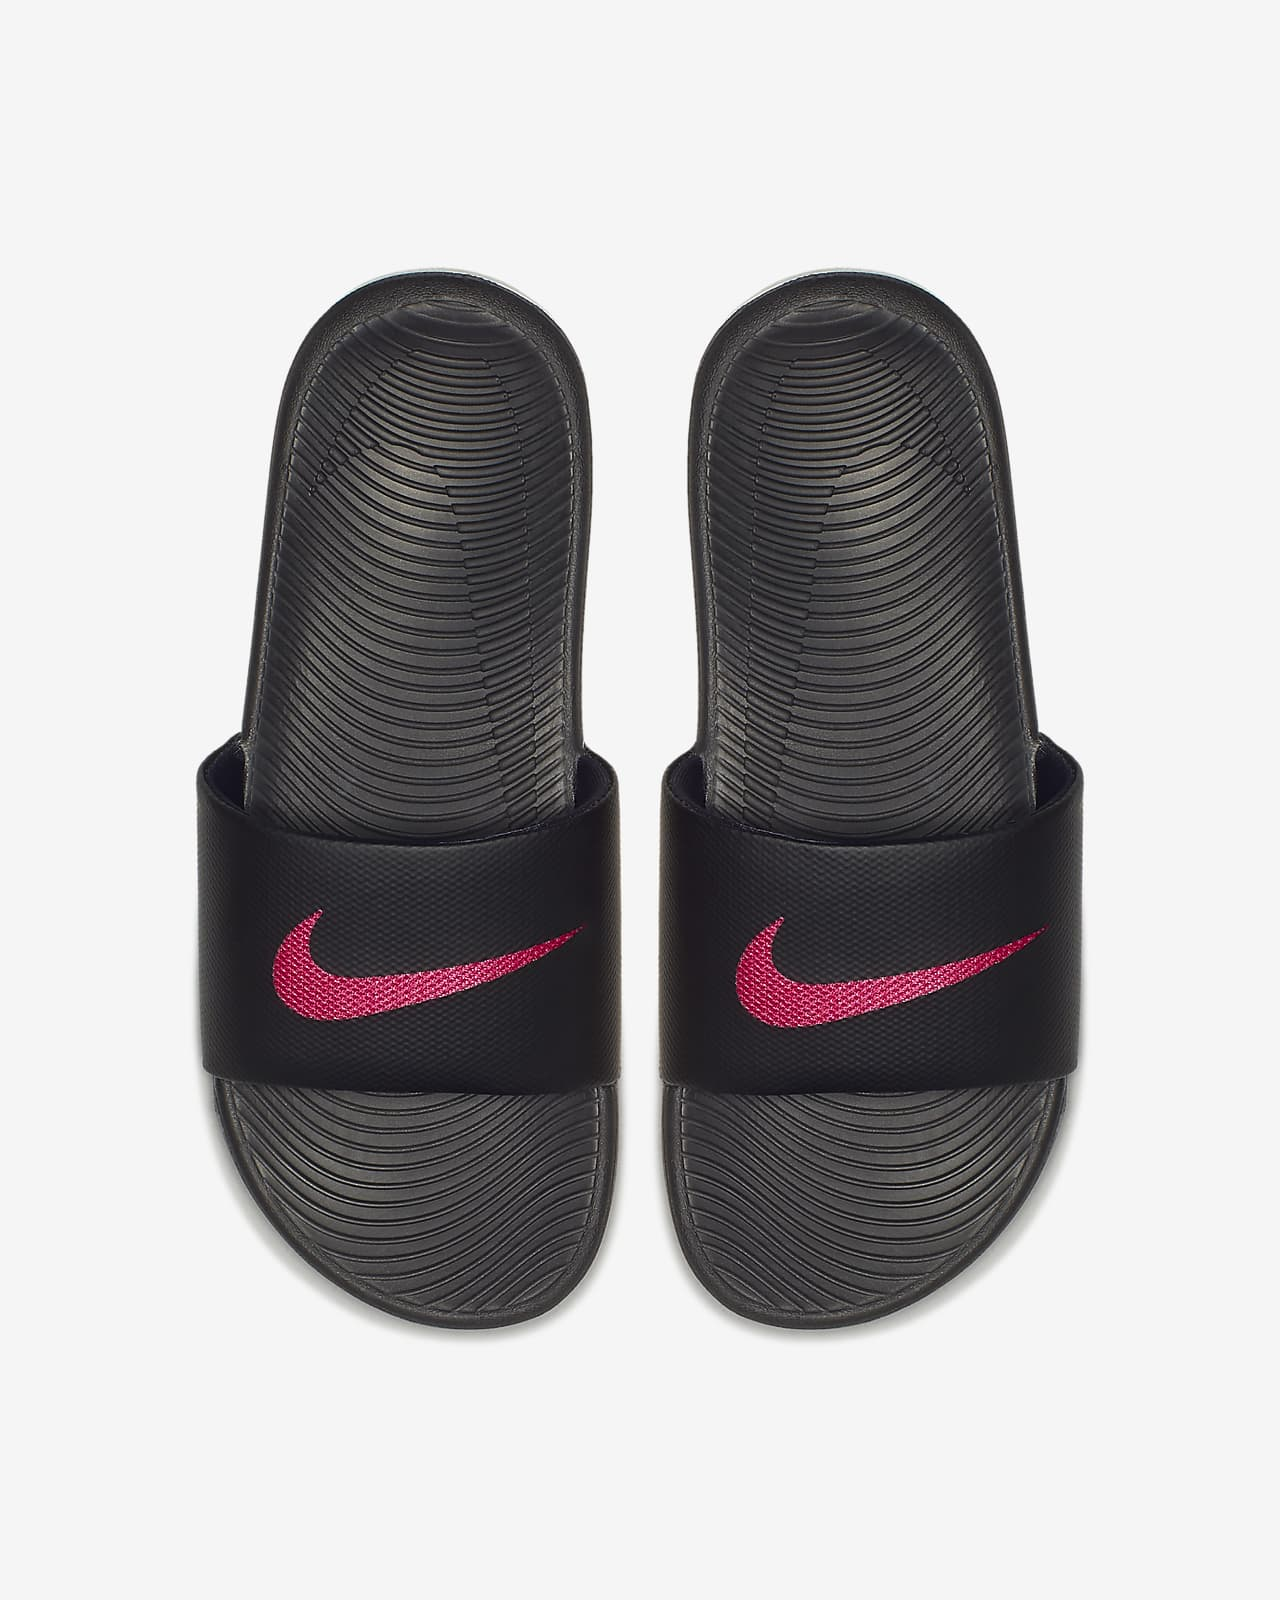 Modales ex hierro  Limited Time Deals·New Deals Everyday chanclas nike pelo, OFF 76%,Buy!